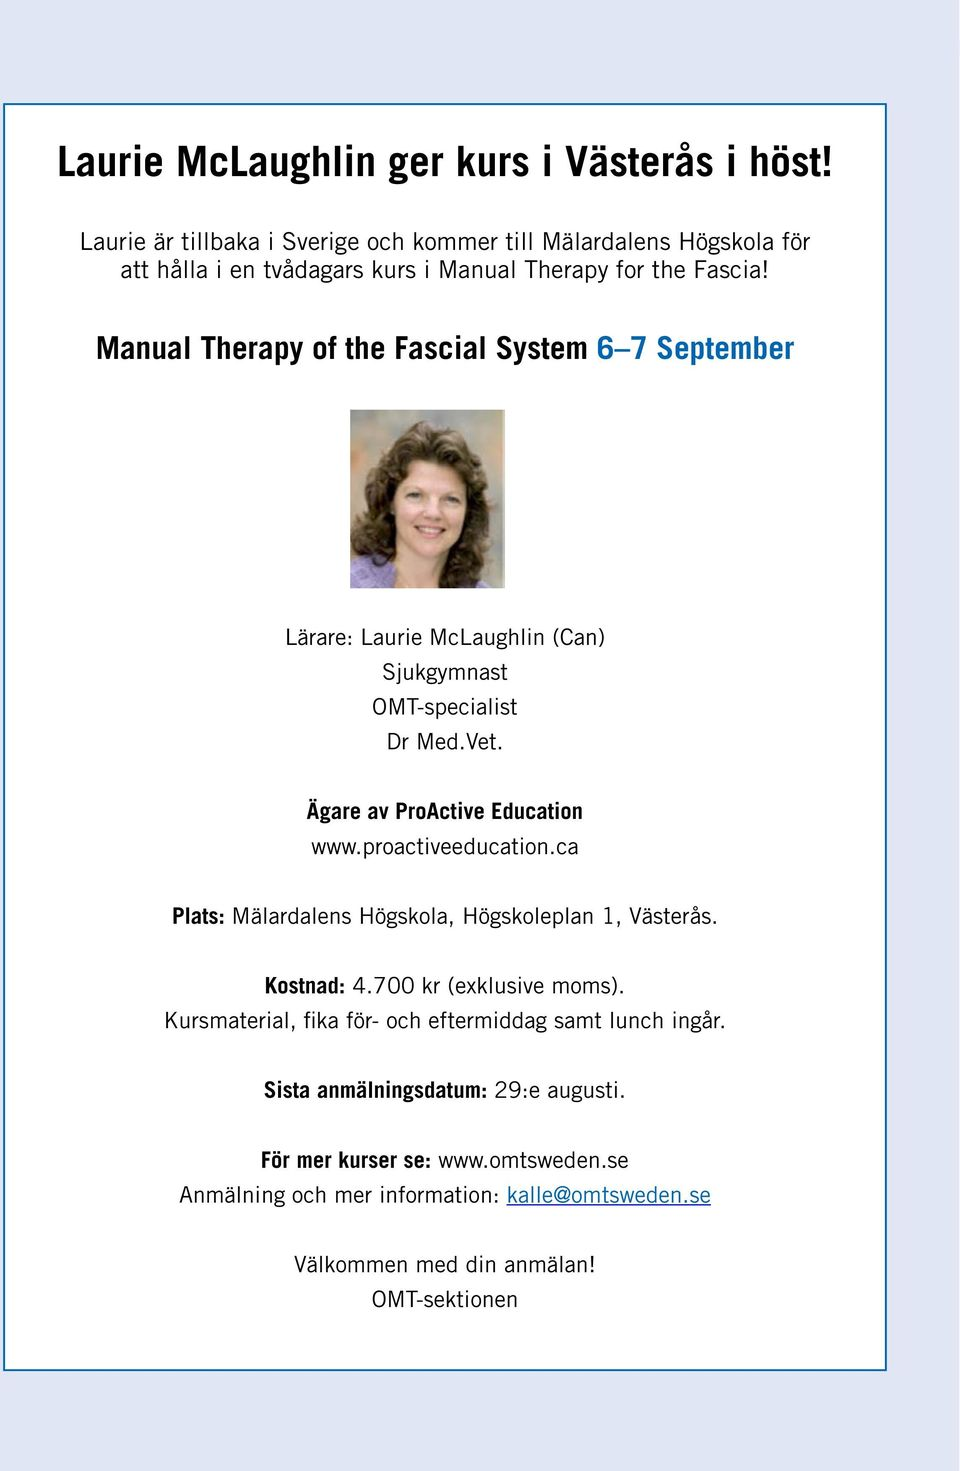 Manual Therapy of the Fascial System 6 7 September Lärare: Laurie McLaughlin (Can) Sjukgymnast OMT-specialist Dr Med.Vet. Ägare av ProActive Education www.